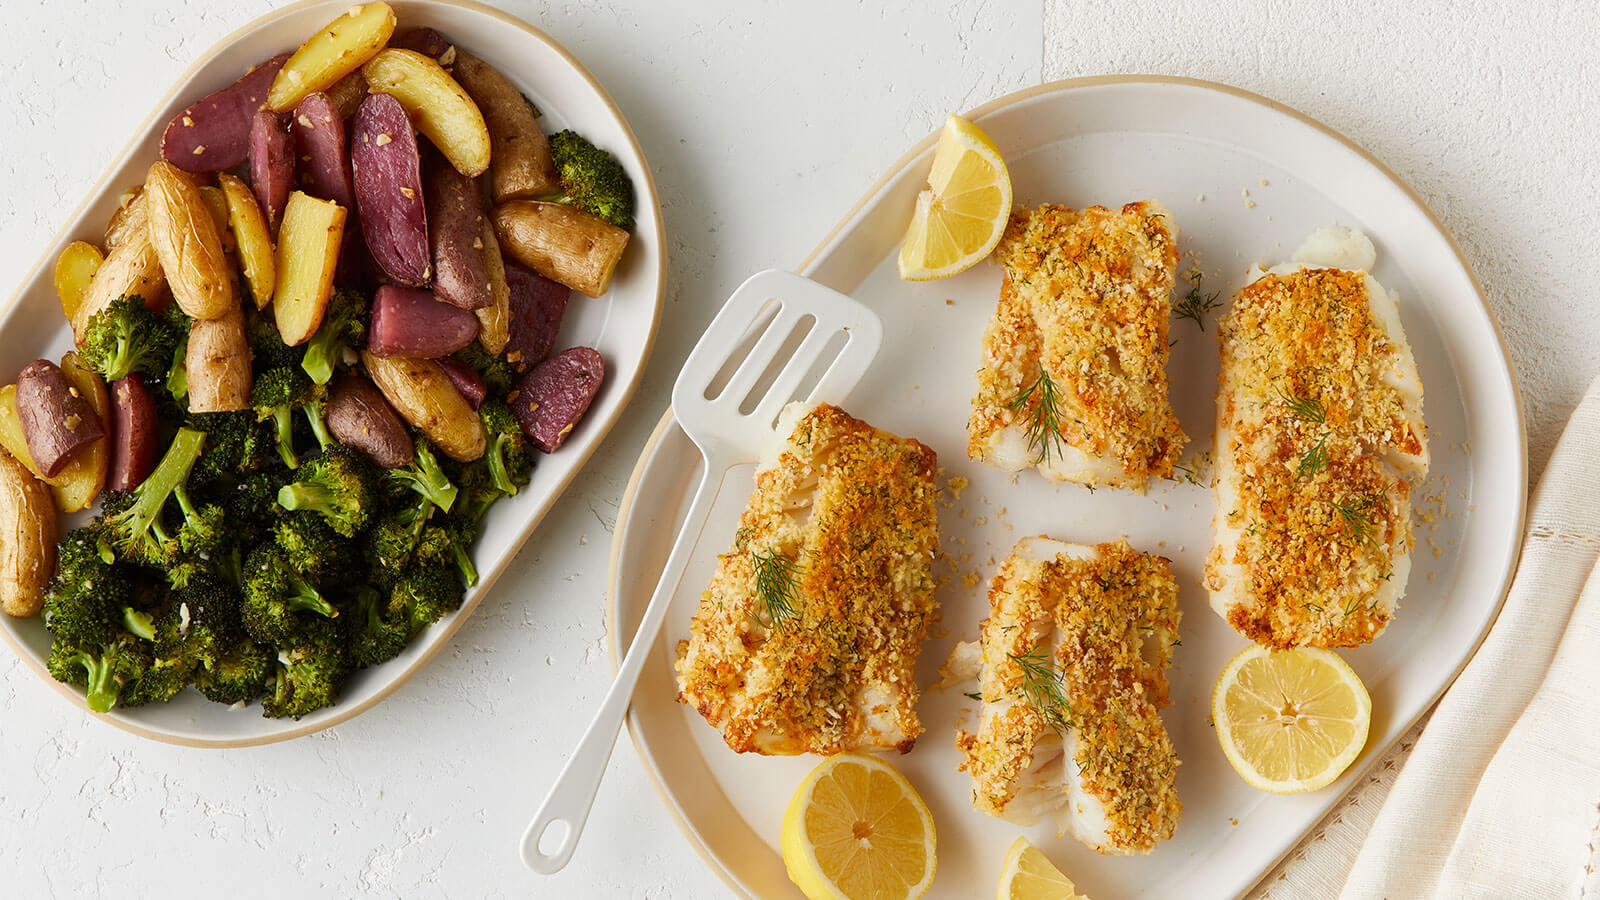 Panko Crusted Everything Cod with Garlic Roasted Broccoli and Potatoes